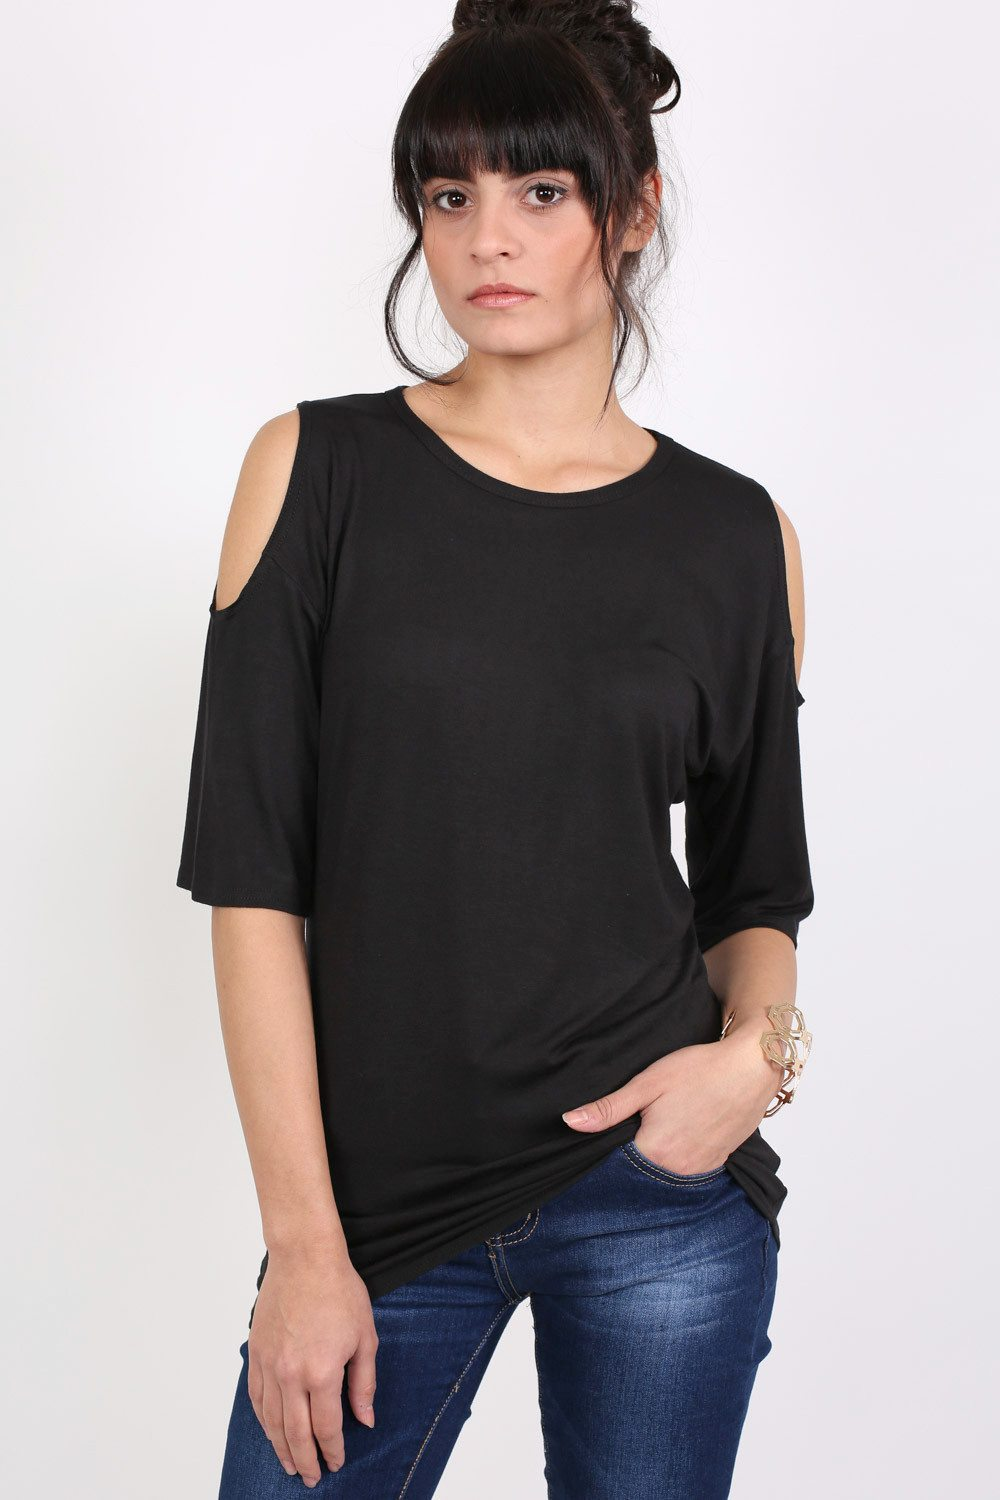 Cold Shoulder Tunic Top in Black MODEL FRONT